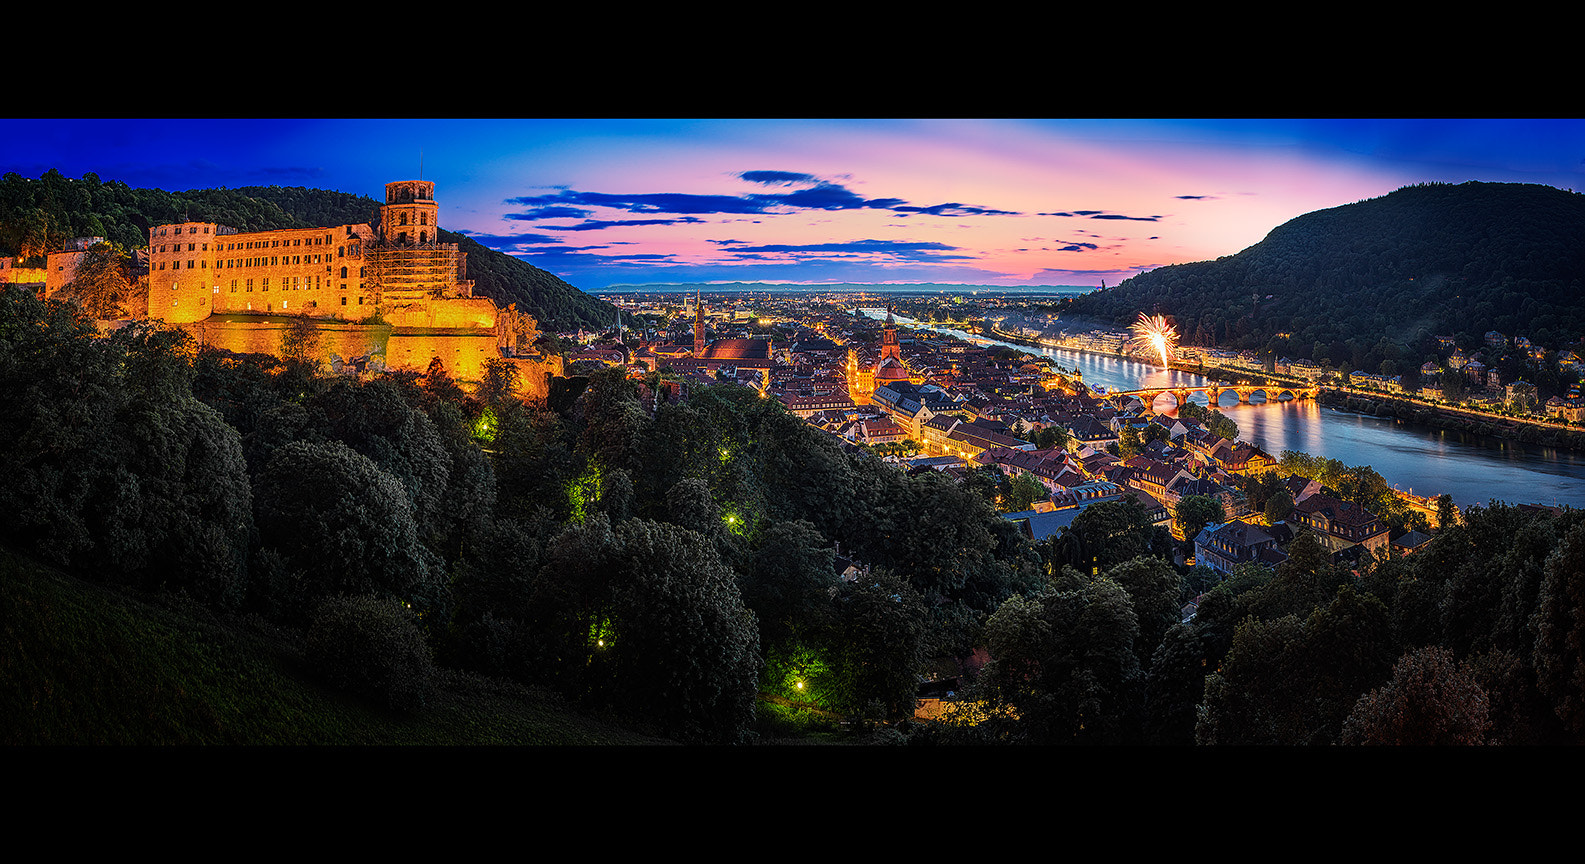 Photograph Glorious Heidelberg by Armin Barth on 500px